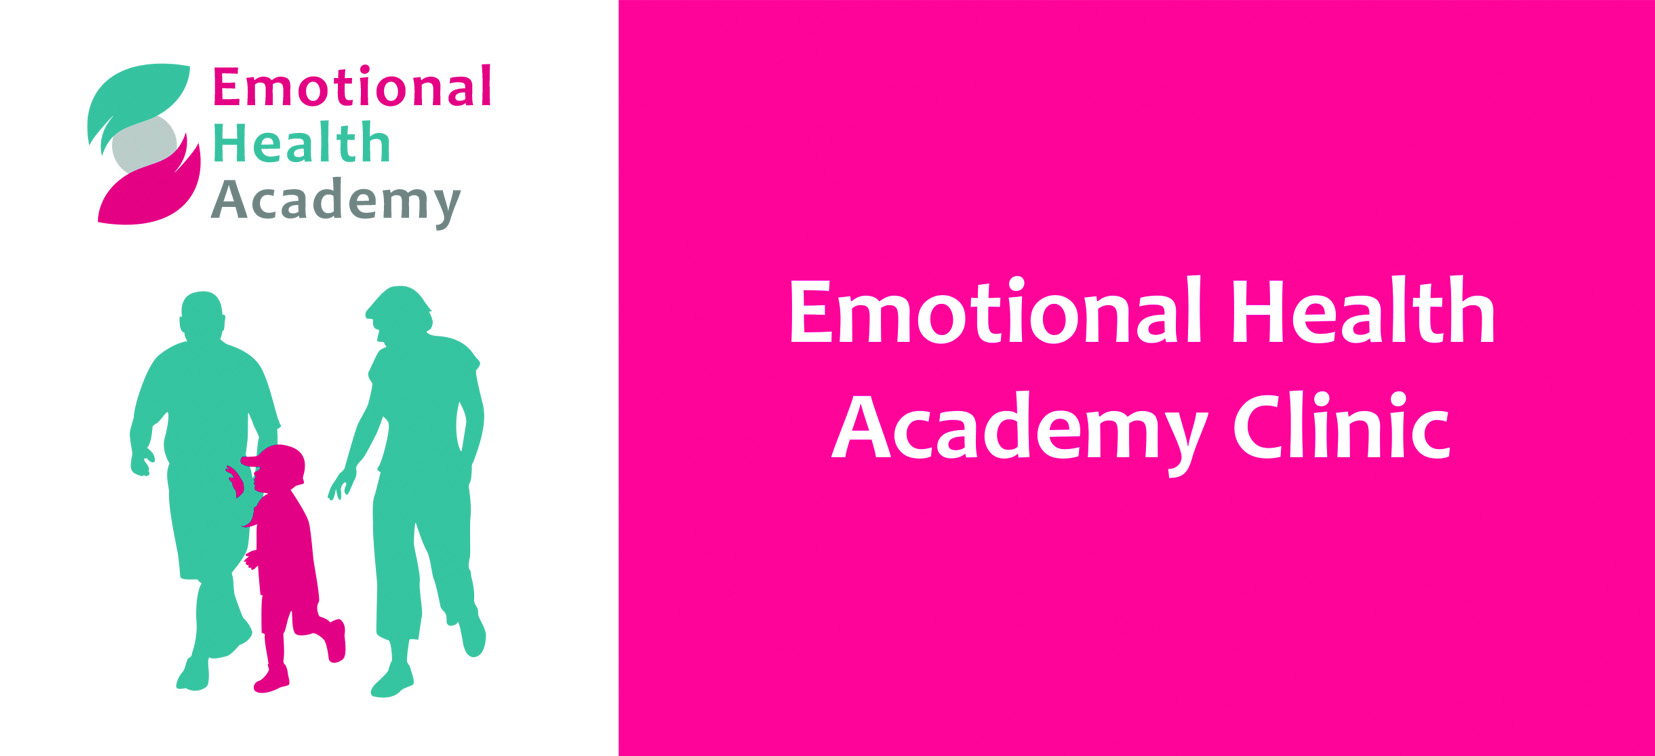 Go to Emotional Health Academy Clinic